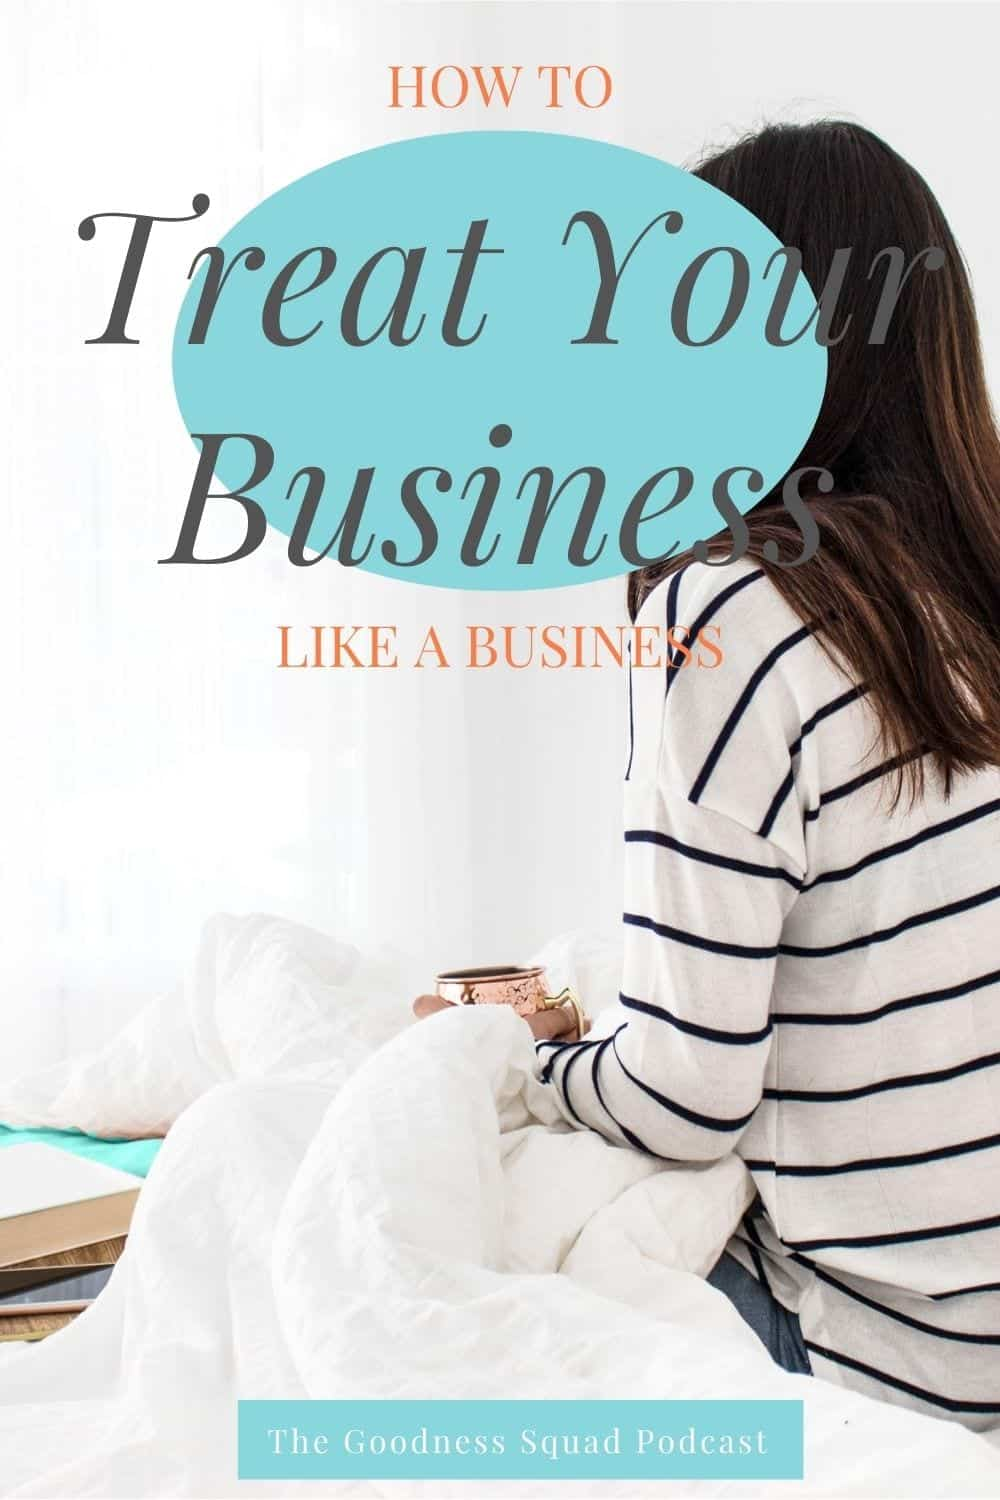 032_How to treat your business like a business